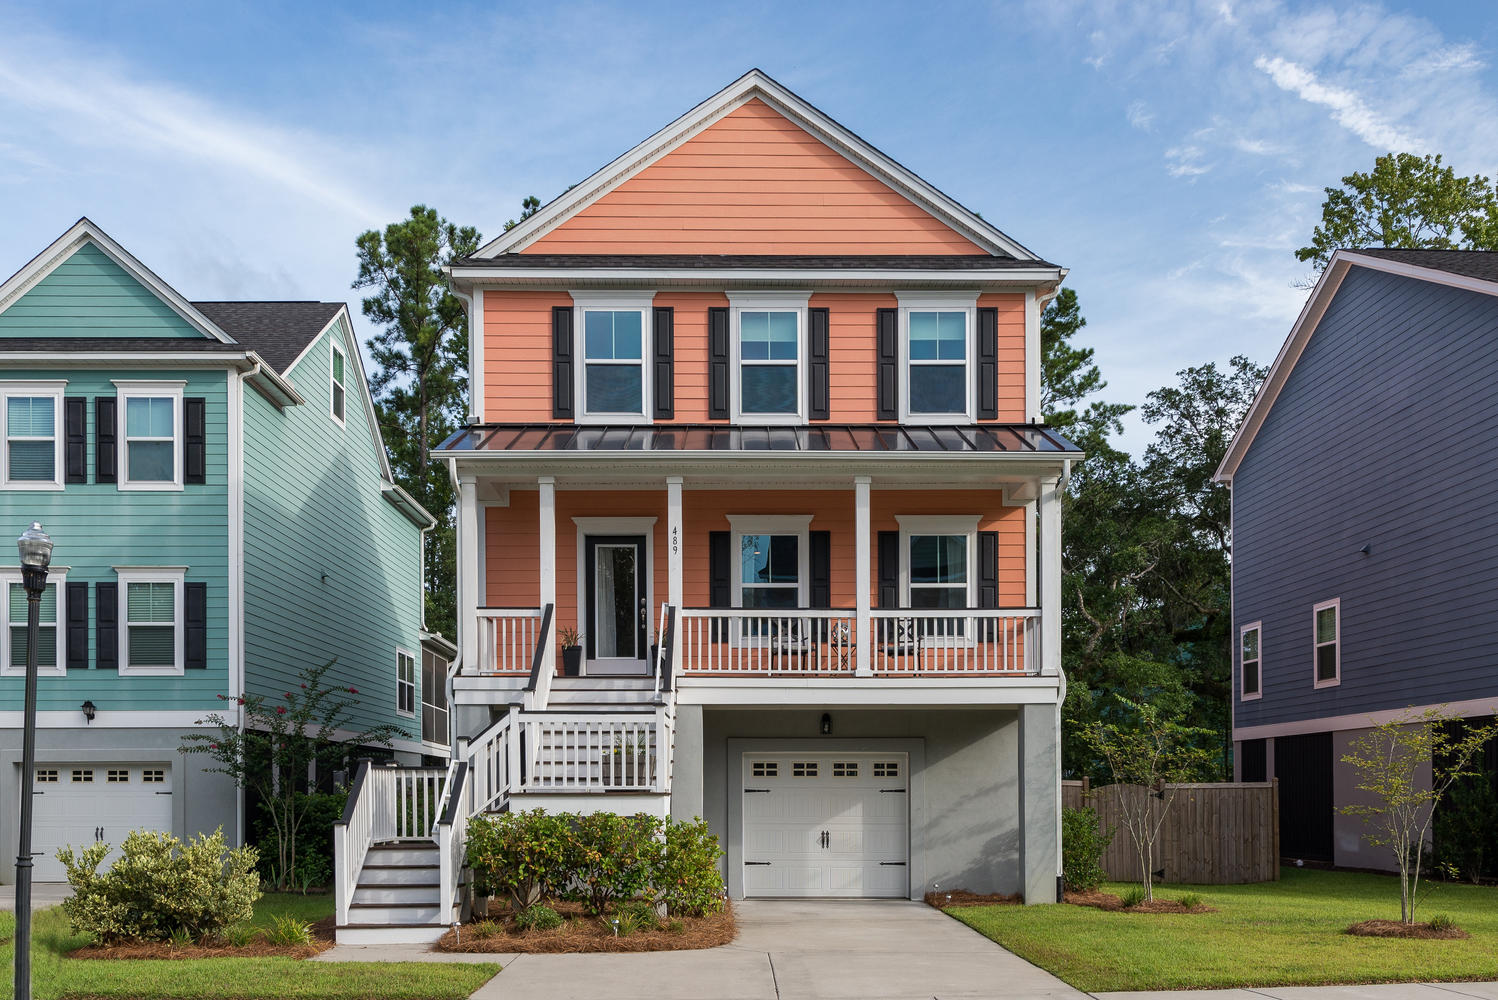 Retreat at Beresford Homes For Sale - 489 Sanders Farm, Charleston, SC - 9